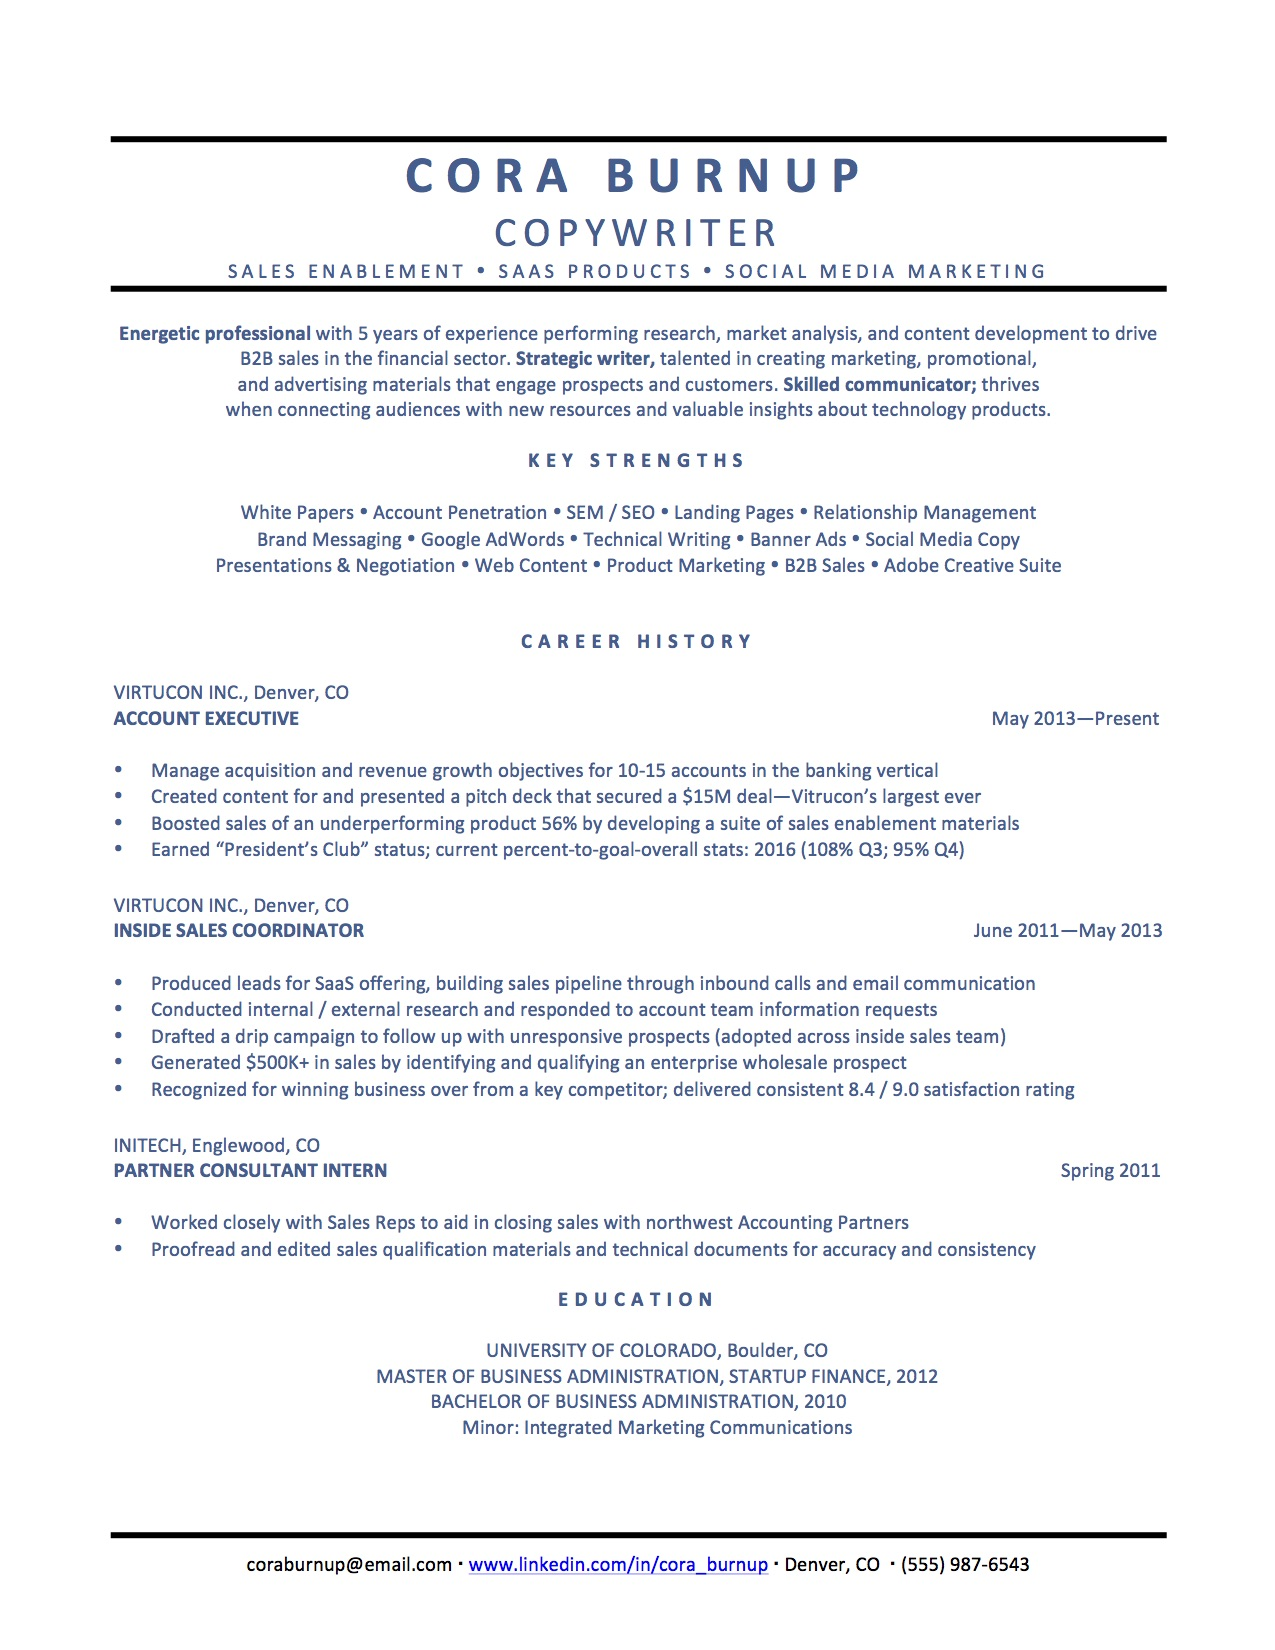 Resume Double Sided How To Spin Your Resume For A Career Change The Muse